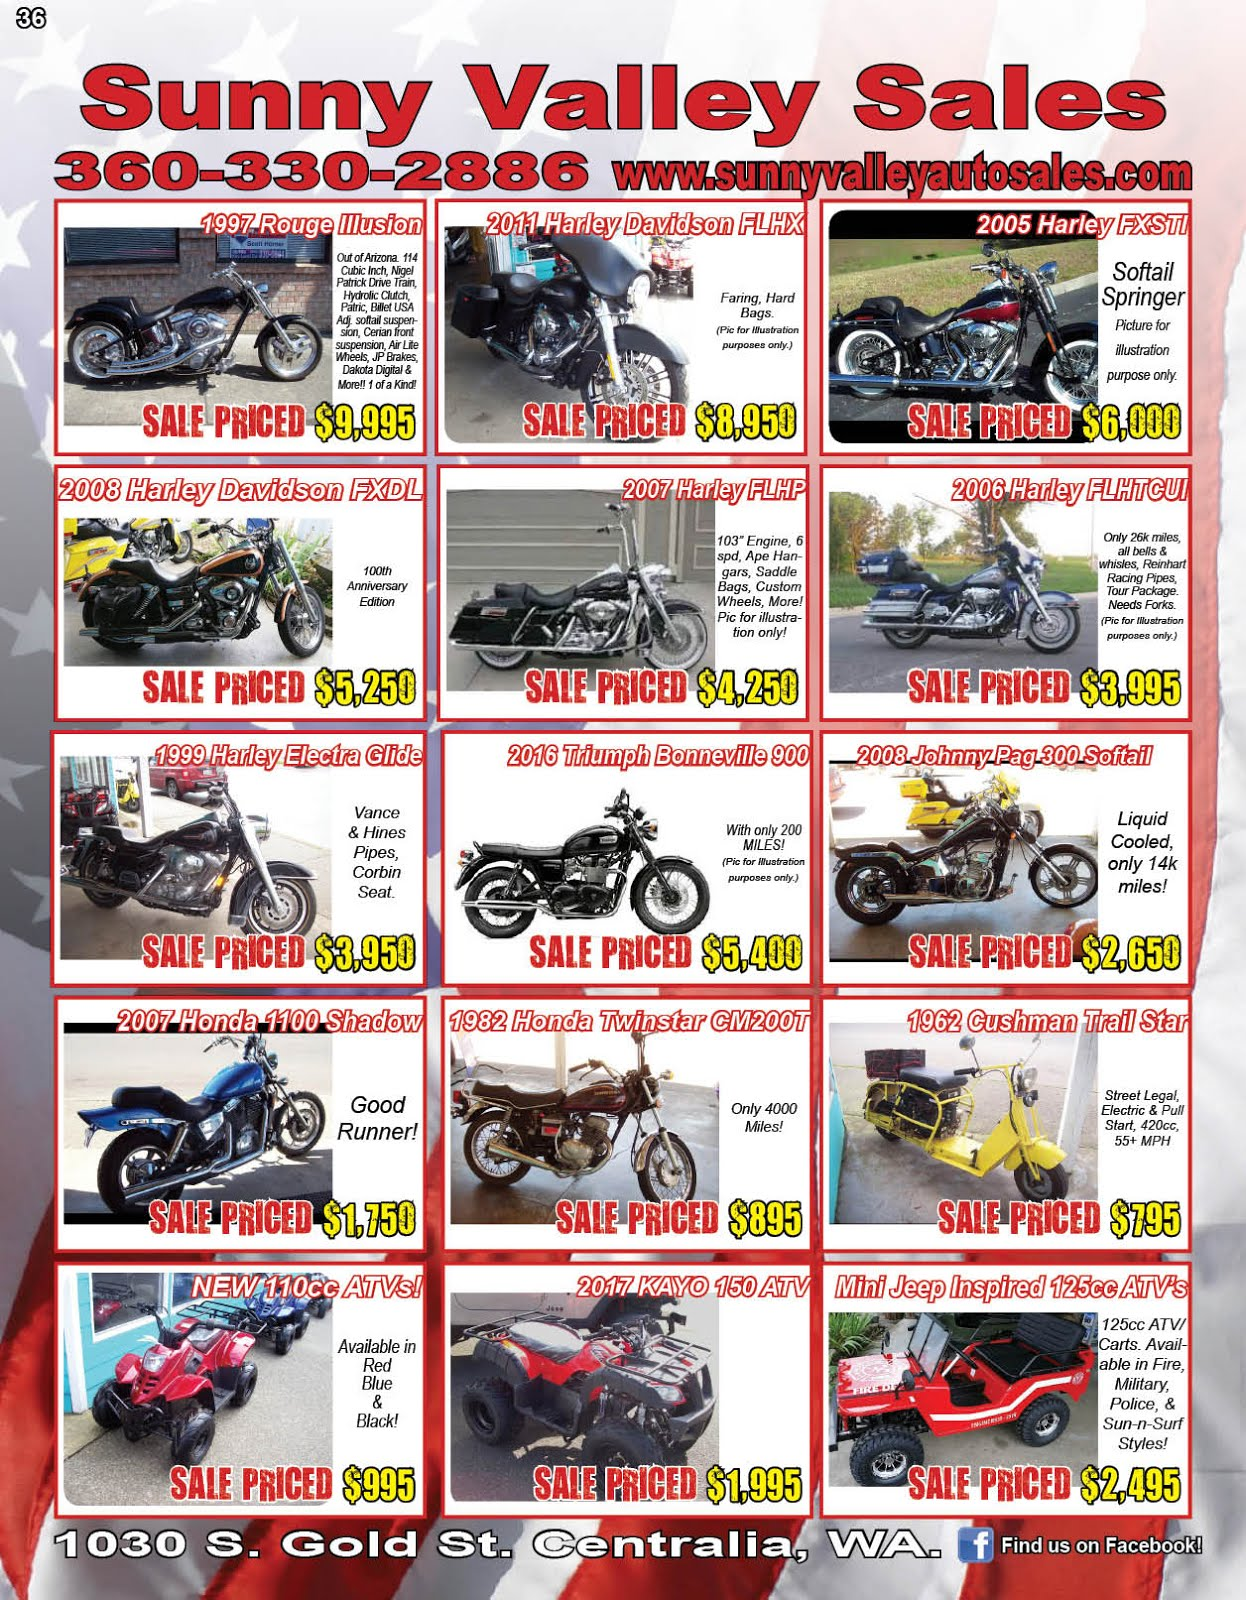 """Sunny Valley Sales"" Used Motorcycles, New ATVs, Classics, More!!"